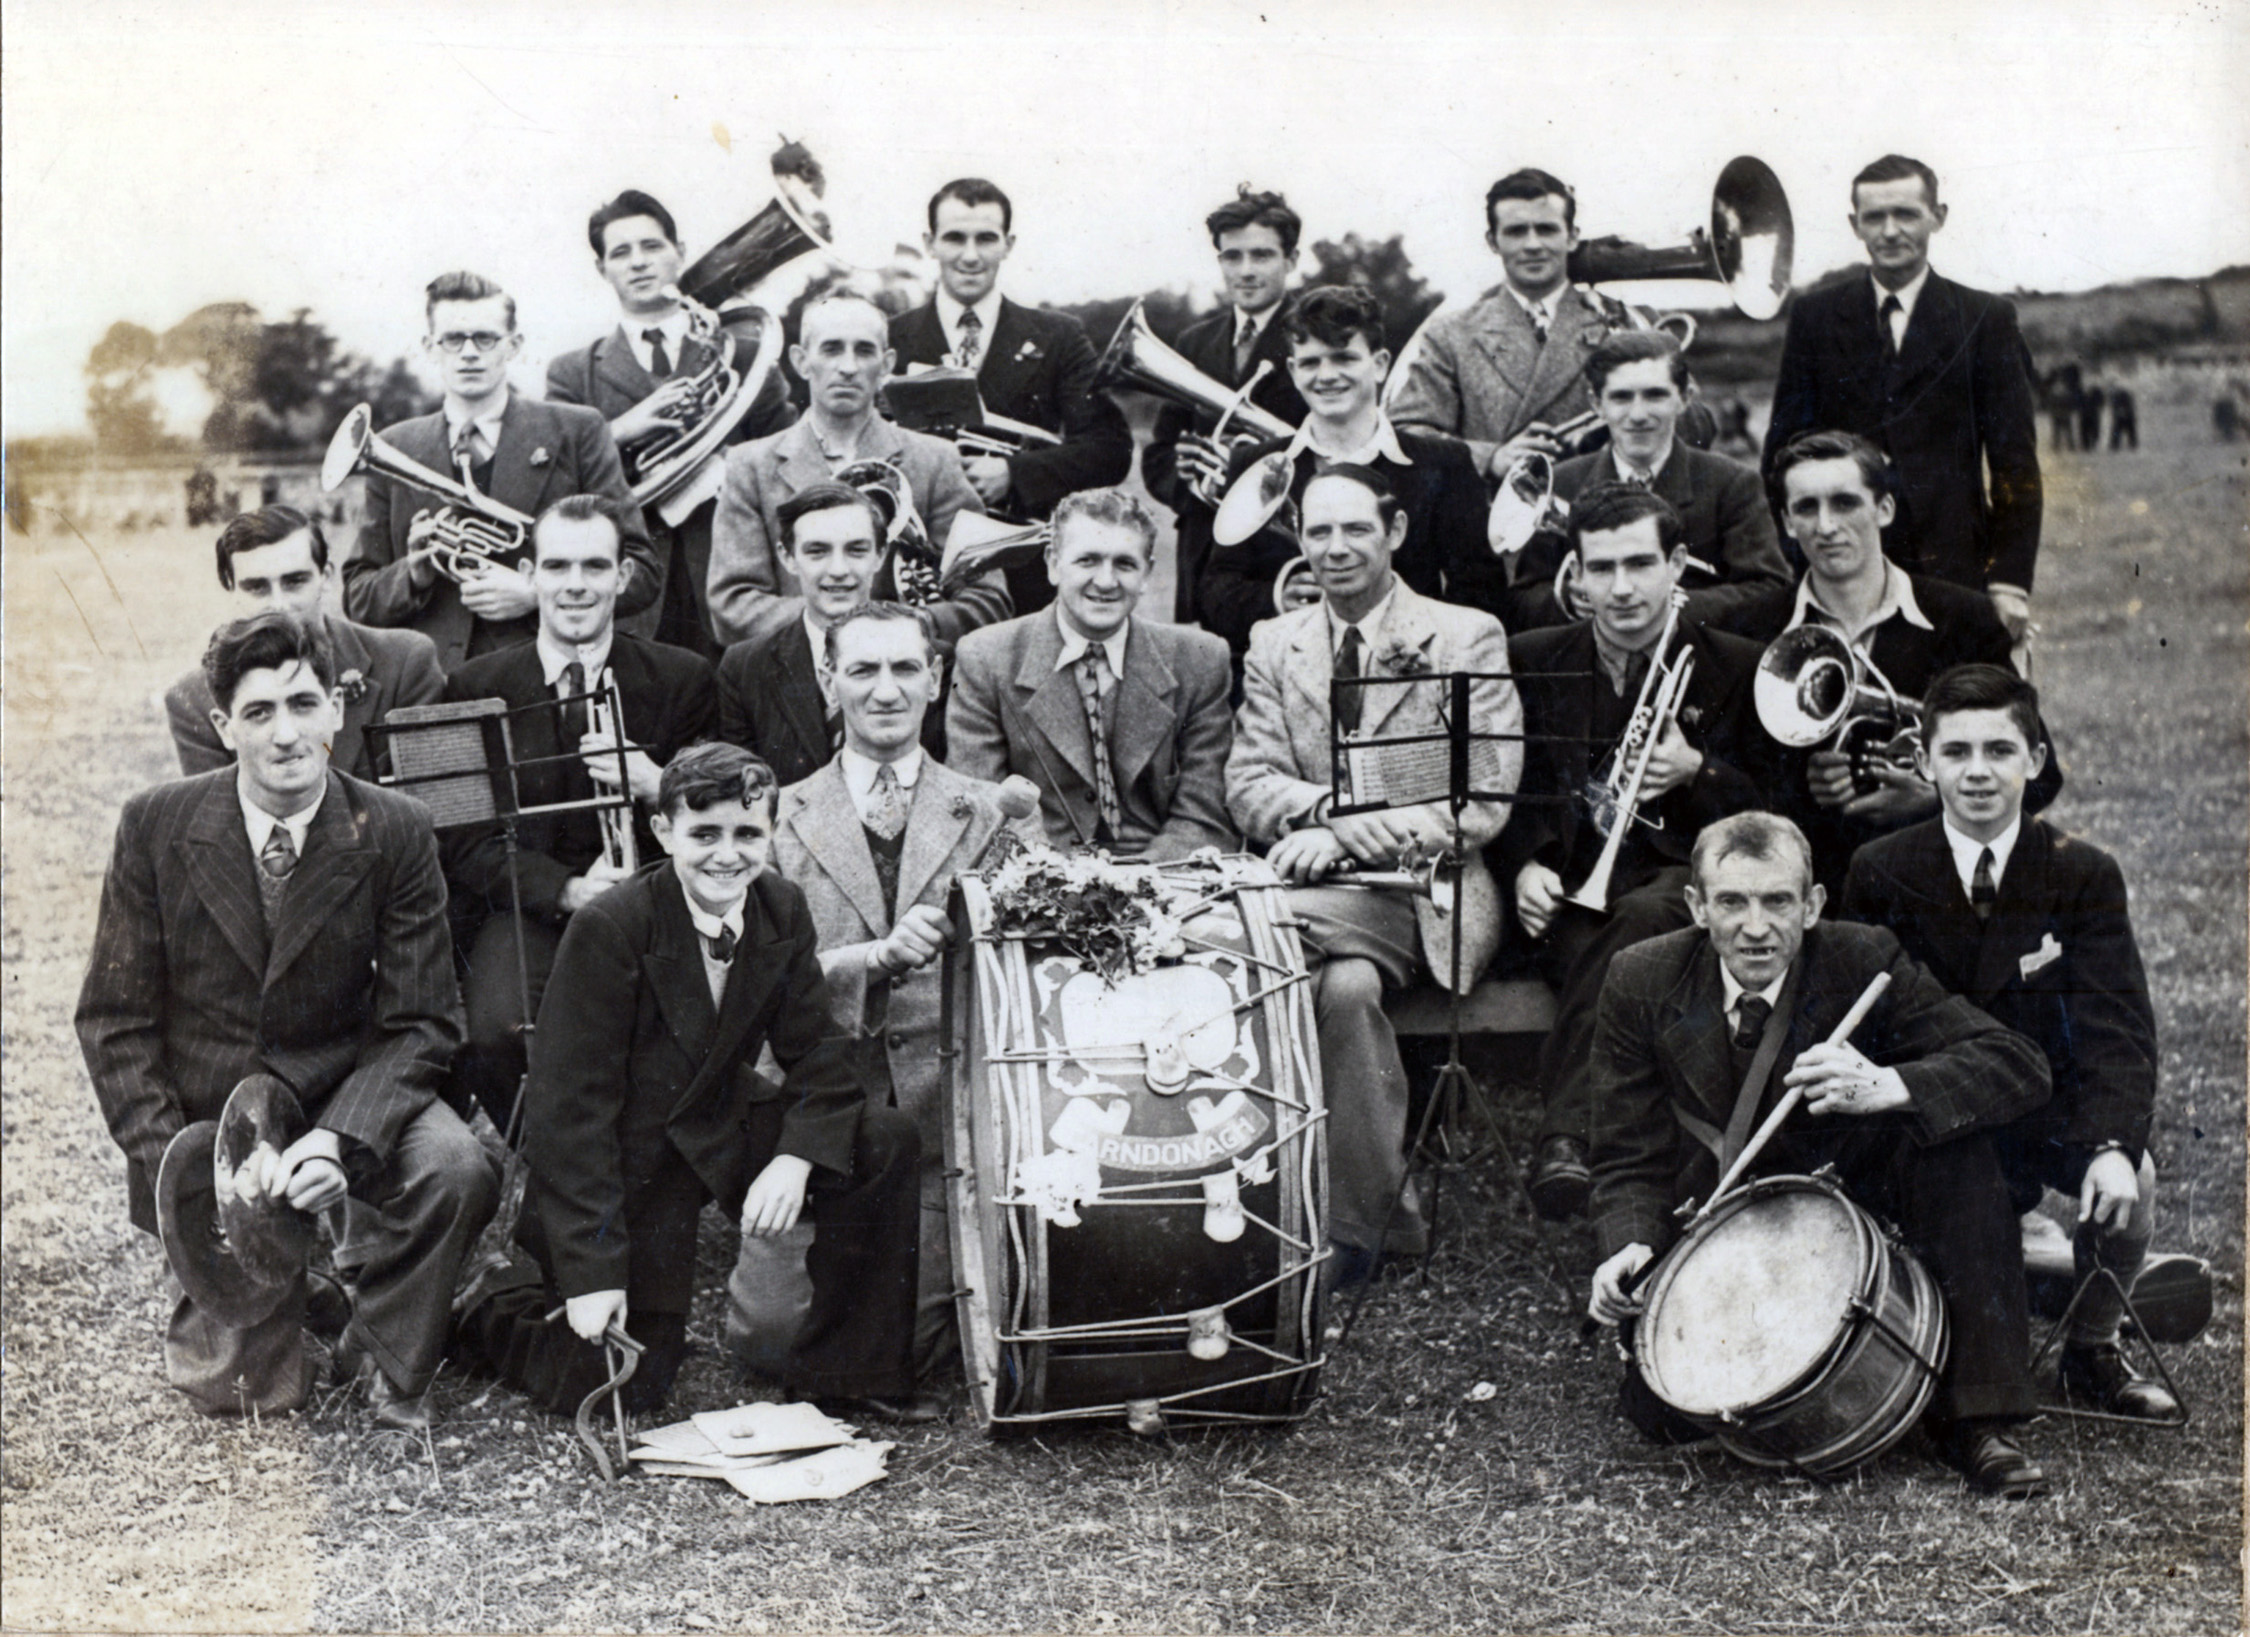 The Carndonagh Brass Band in the Showfield, Carndonagh, c. 1950